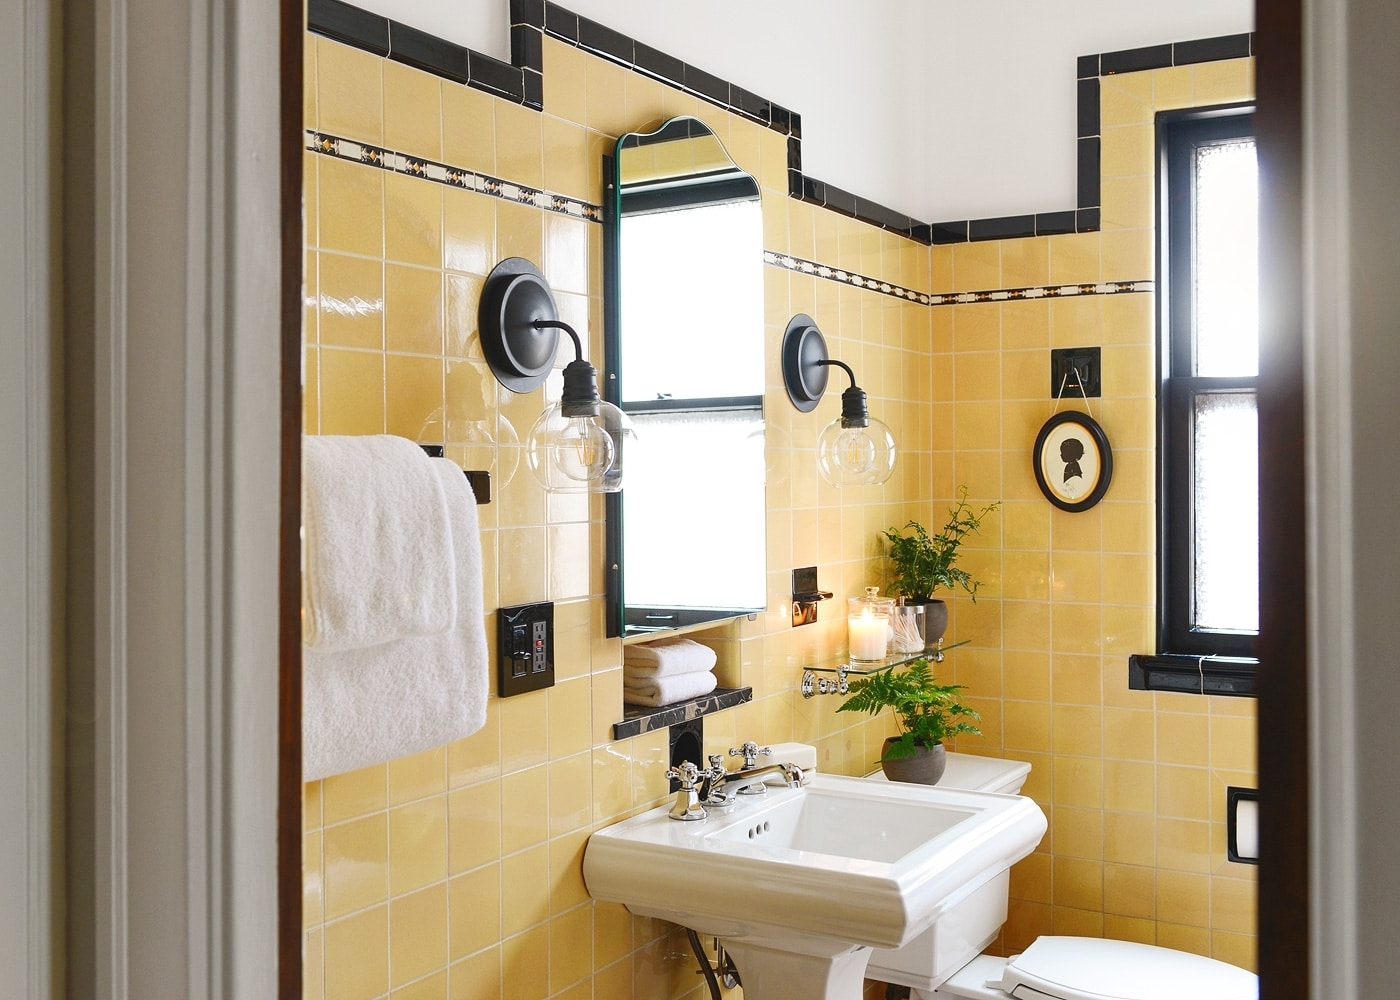 How To Refresh A Vintage Bathroom + Keep The Charm: Ii Of Ii 40+ 50S Bathroom Remodel Inspirations